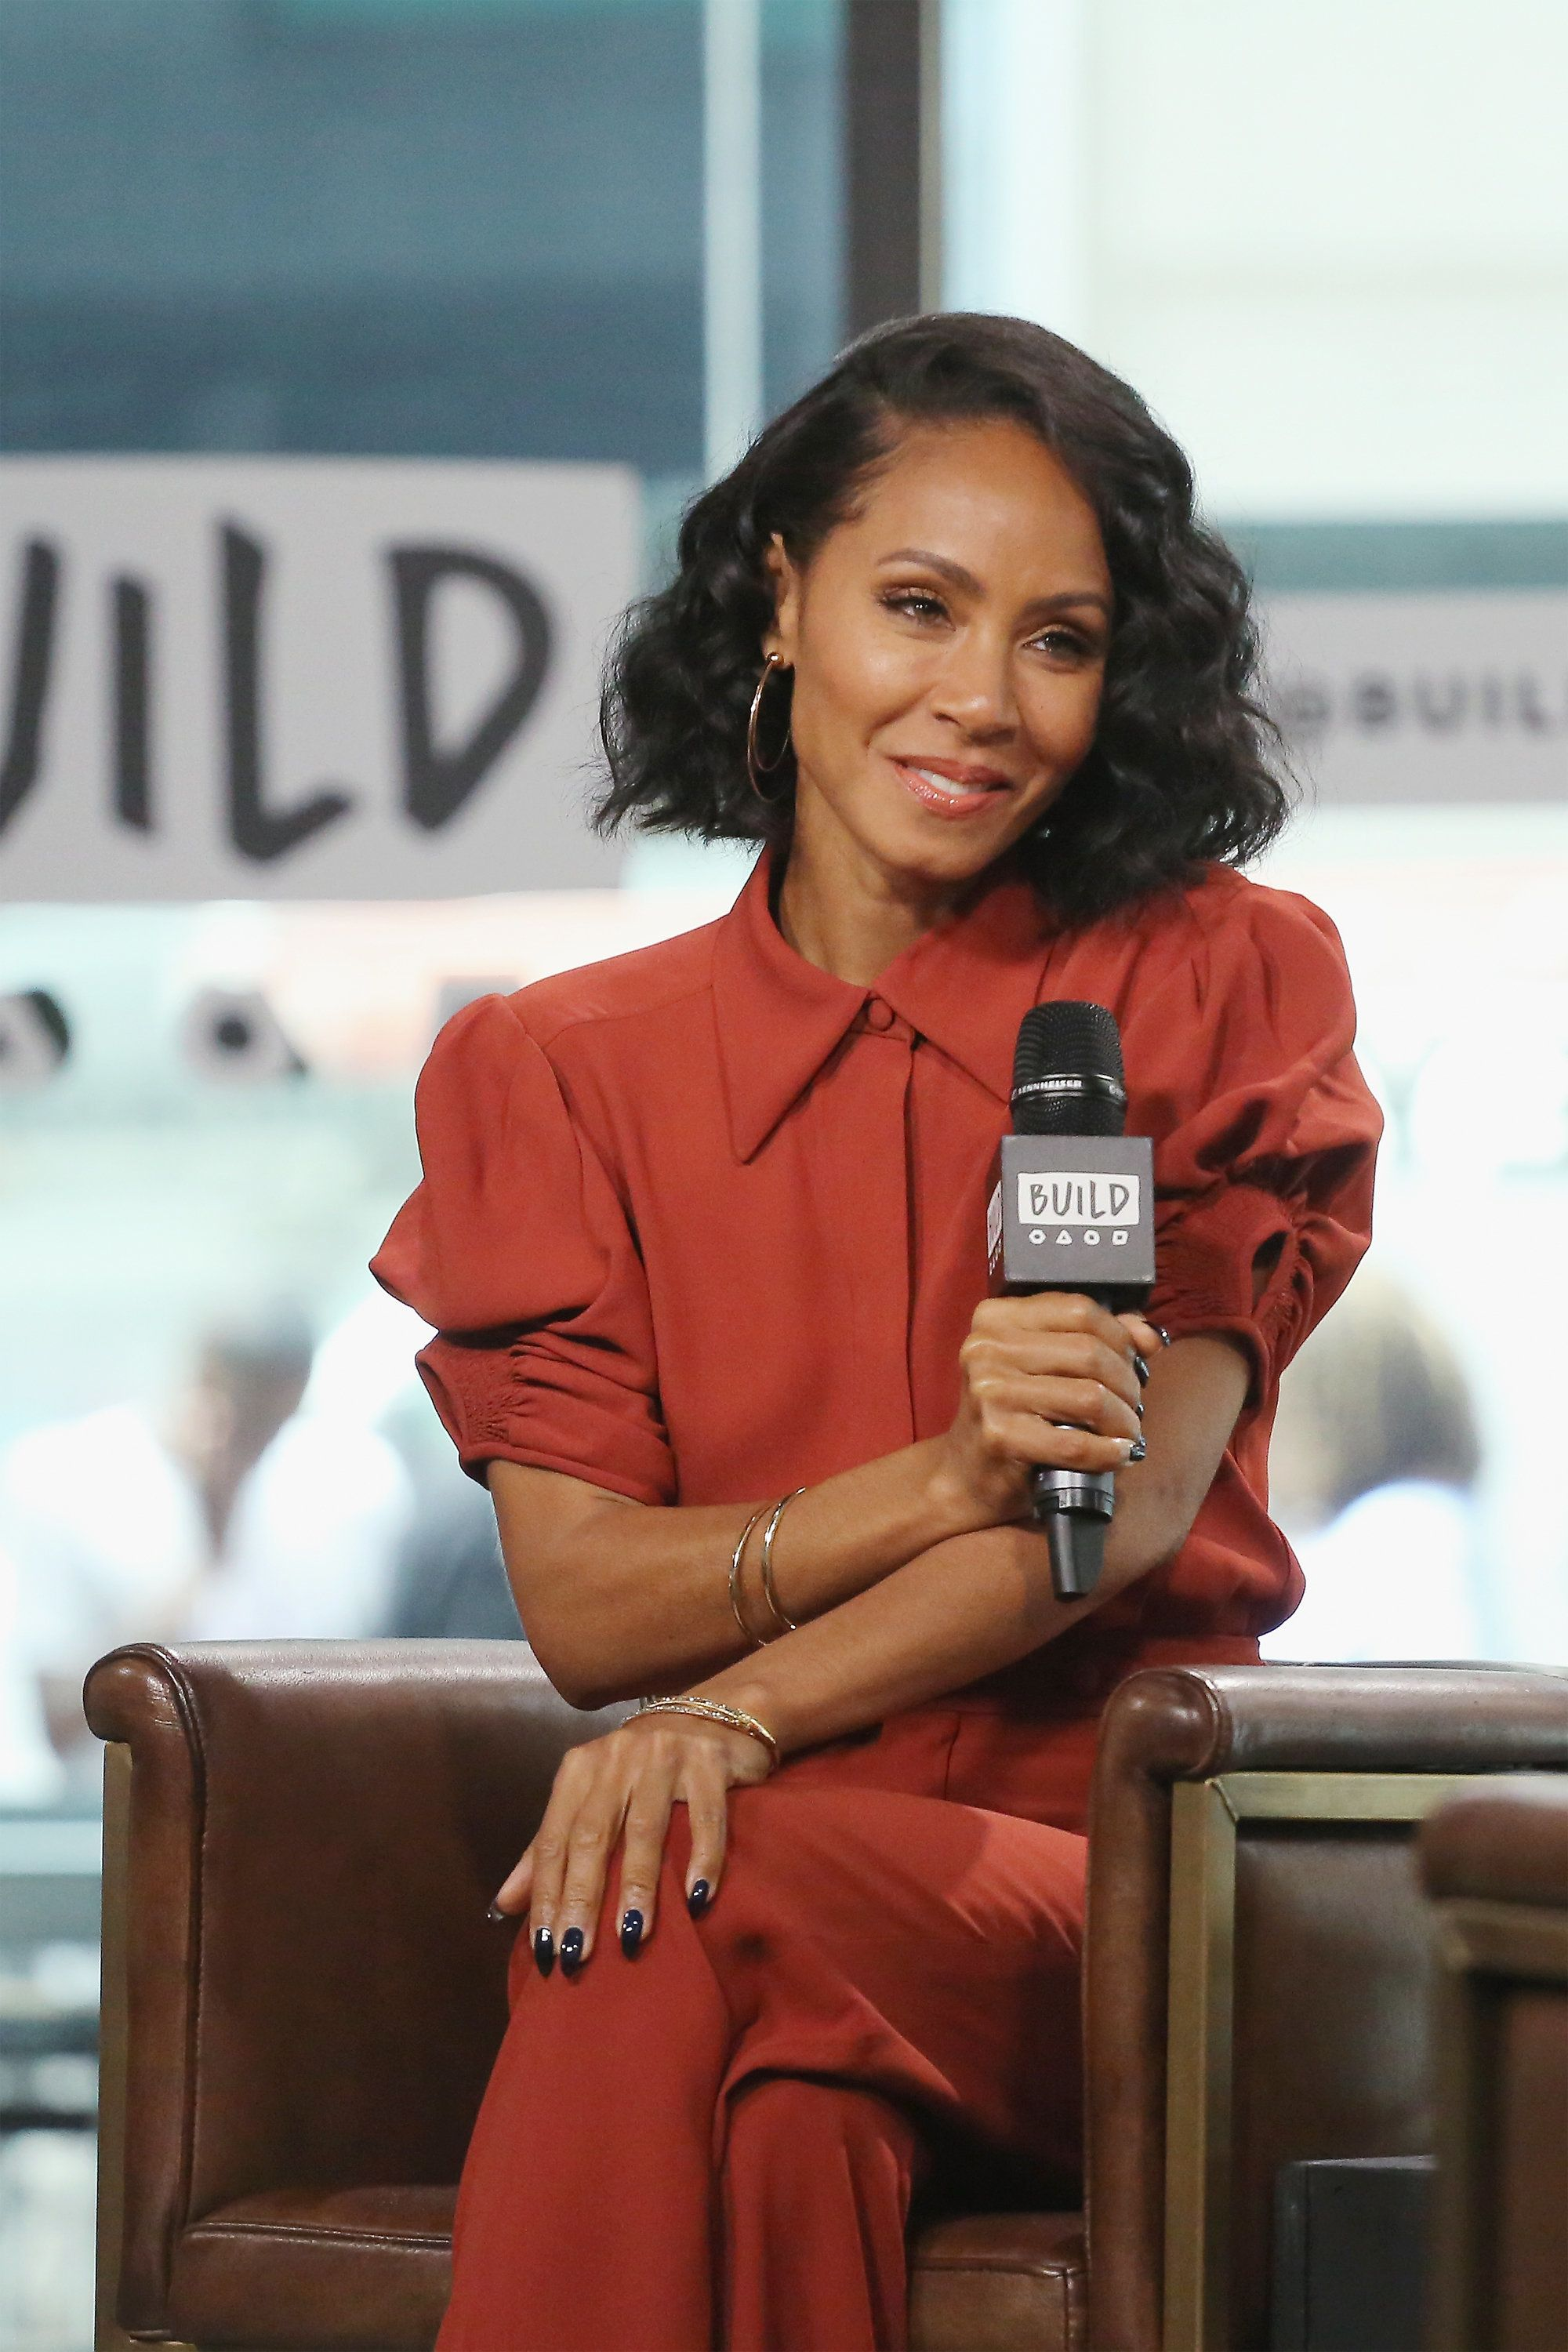 NEW YORK, NY - JULY 17:  Actress Jada Pinkett Smith visits Build to discuss the film 'Girls Trip' at Build Studio on July 17, 2017 in New York City.  (Photo by Mireya Acierto/FilmMagic)